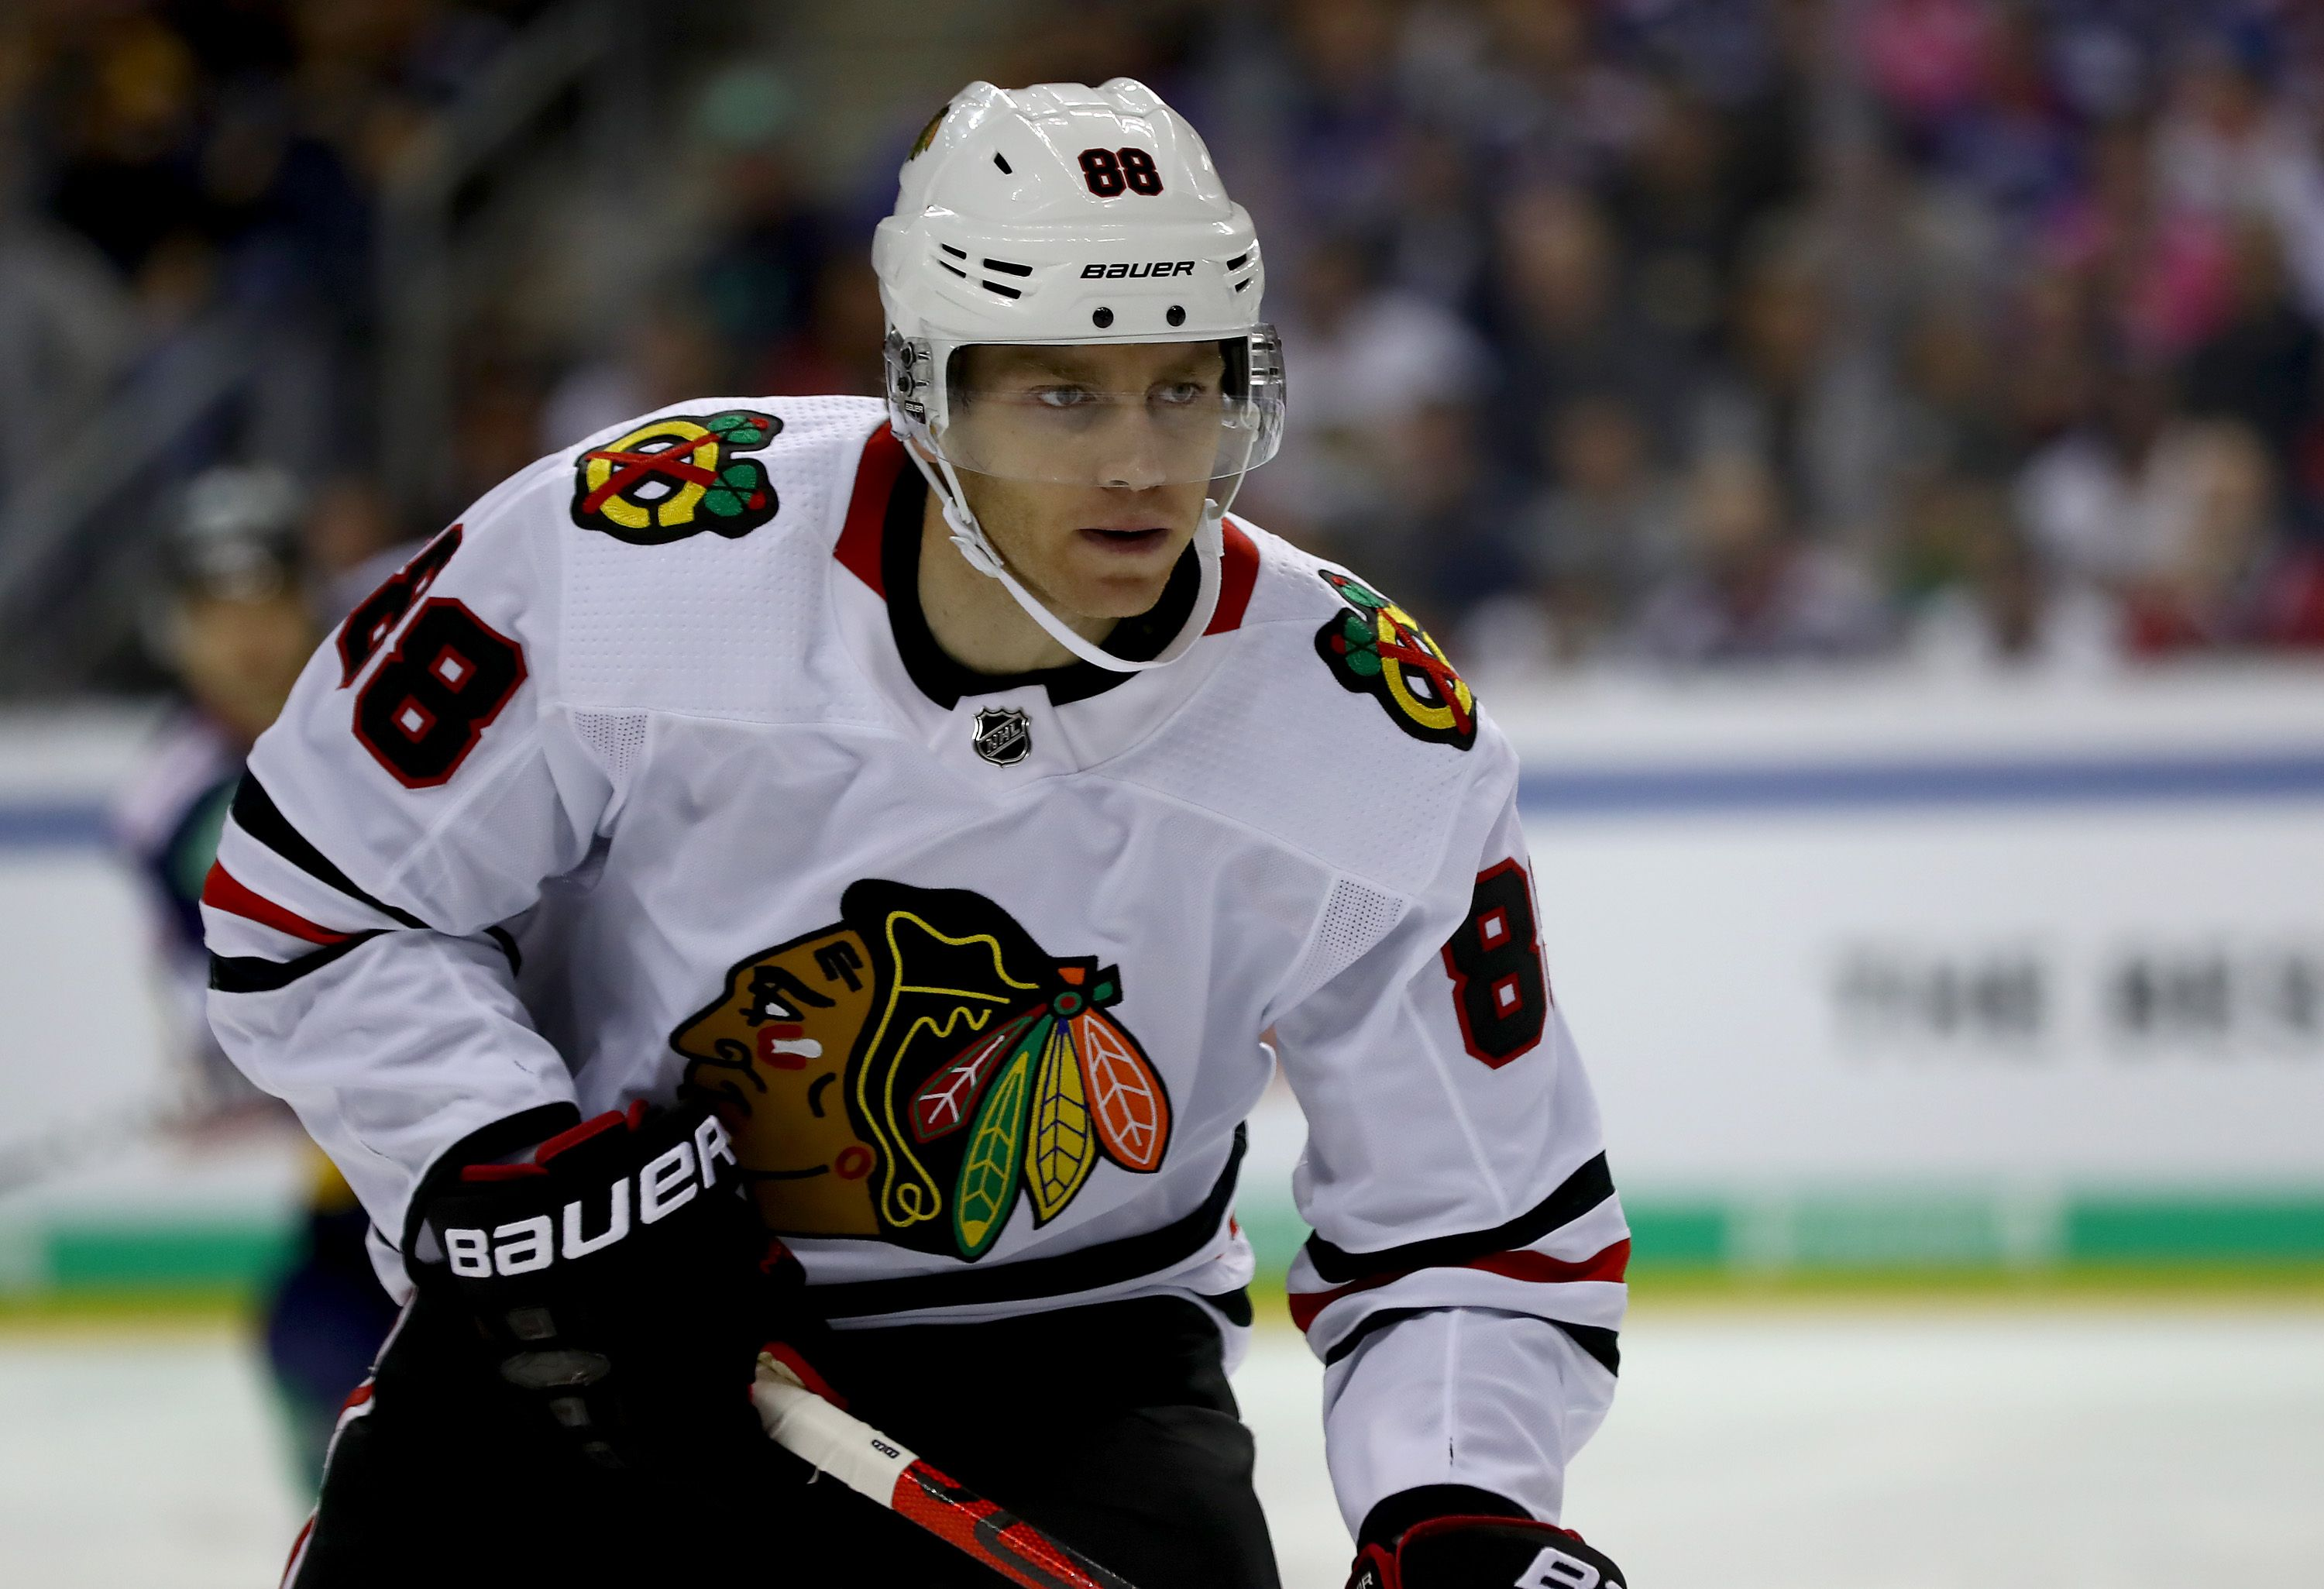 Patrick Kane Ditched Weight Room Workouts and Had a Career Year